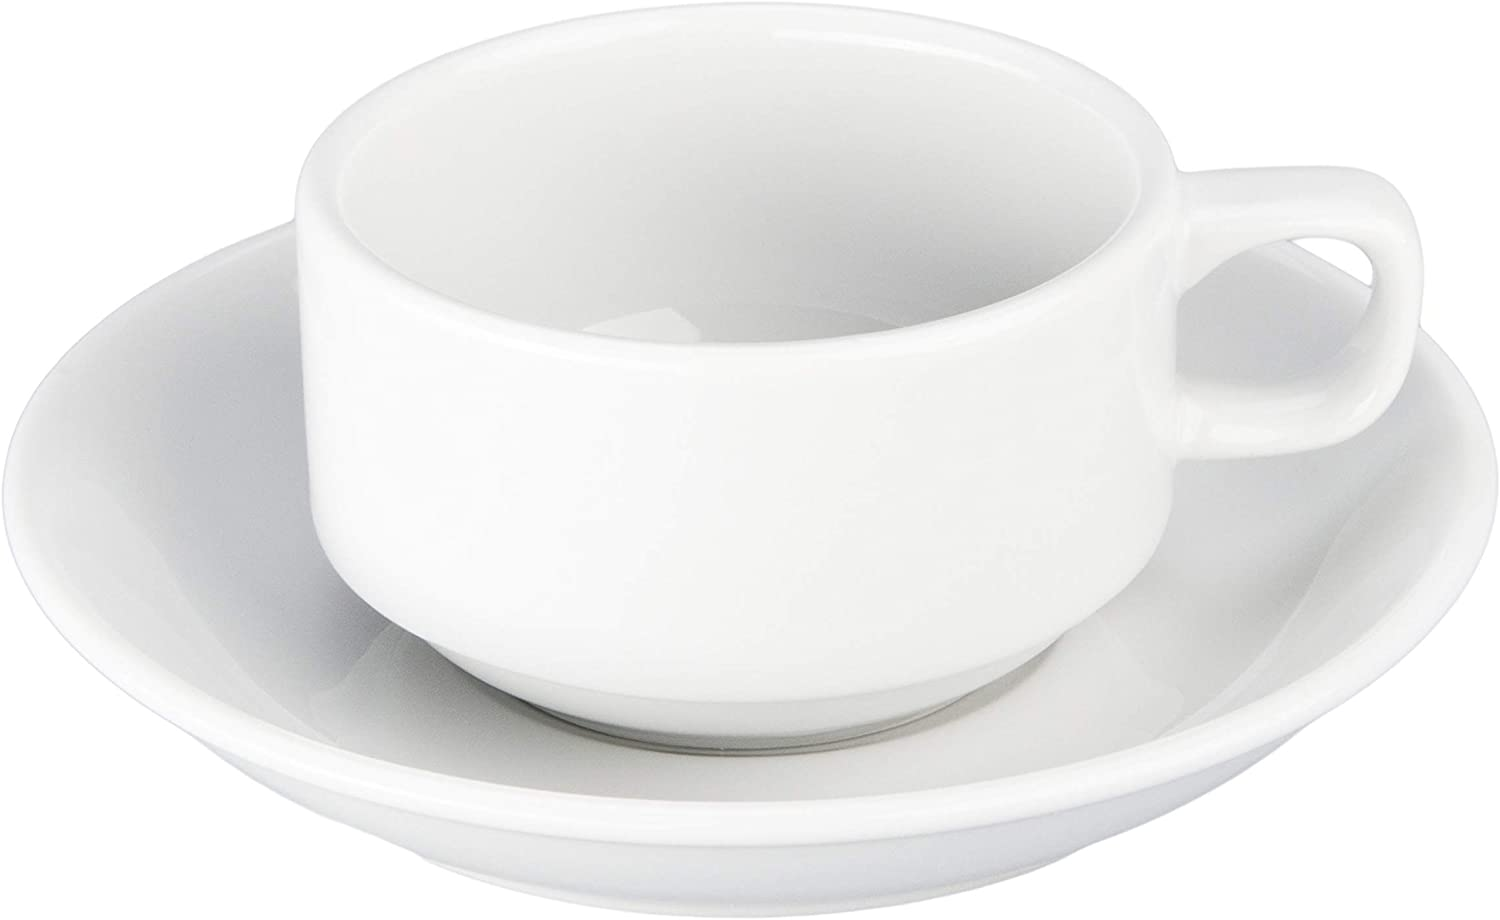 Ranking TOP13 BIA Cordon Bleu Serveware low-pricing Cup and White 4 Saucer Set of